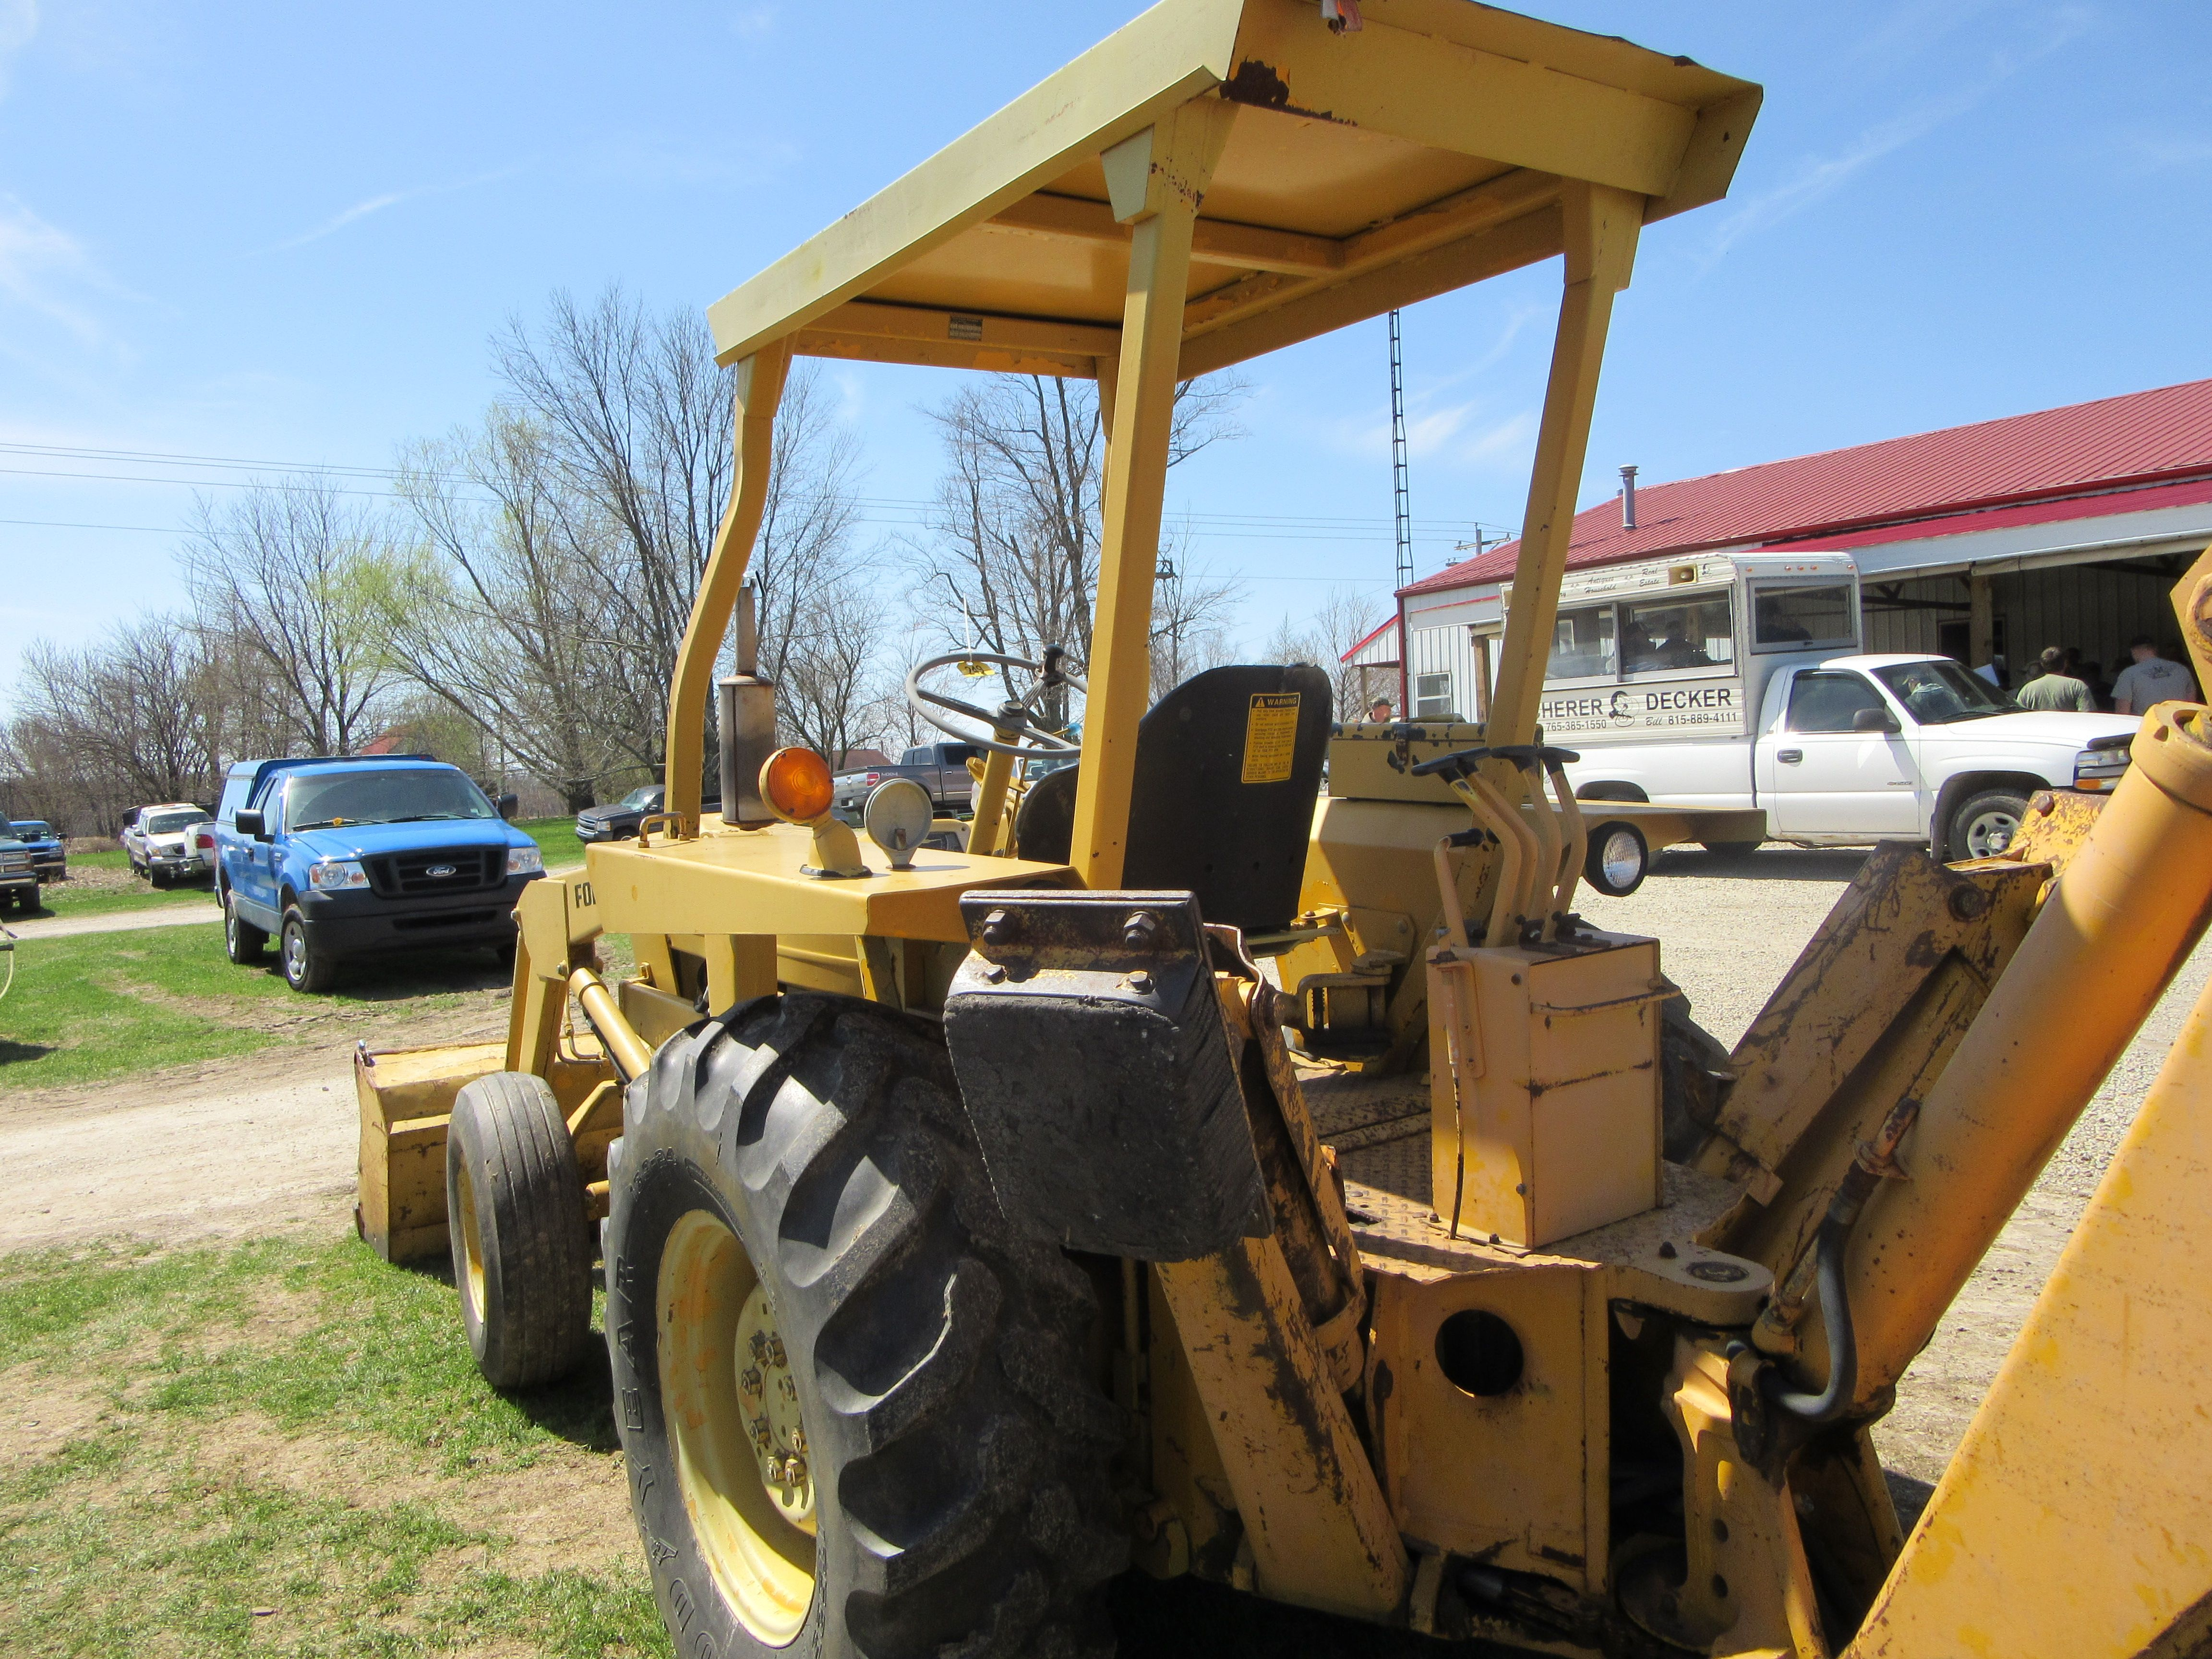 Ford 3550 Tractor Loader Backhoe From The Rear Ford Tractors